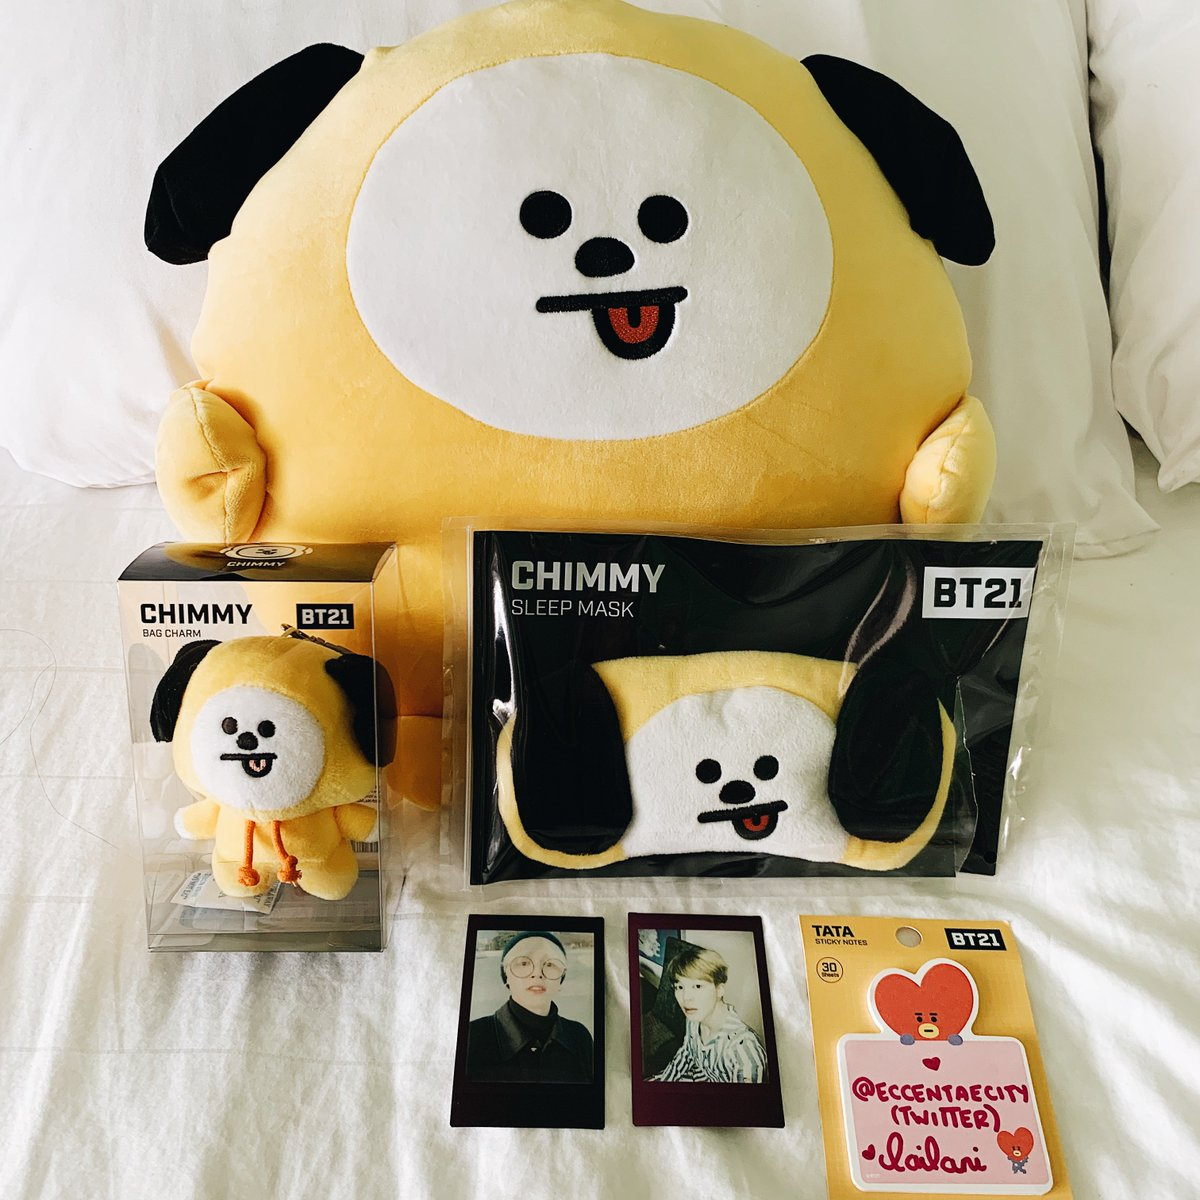 JIMIN BIRTHDAY GIVEAWAY   Official BT21: CHIMMY pong pong pillow, bag charm, sleepmask, & 2 polaroids.   MBF @eccentaecity   RT  Tag a moot  WW  Post following bobawithluv Instagram account screenshot & a photo of your bias.  Ends 10/8/19. Good luck  #BTSGA <br>http://pic.twitter.com/gHveVMwEPm